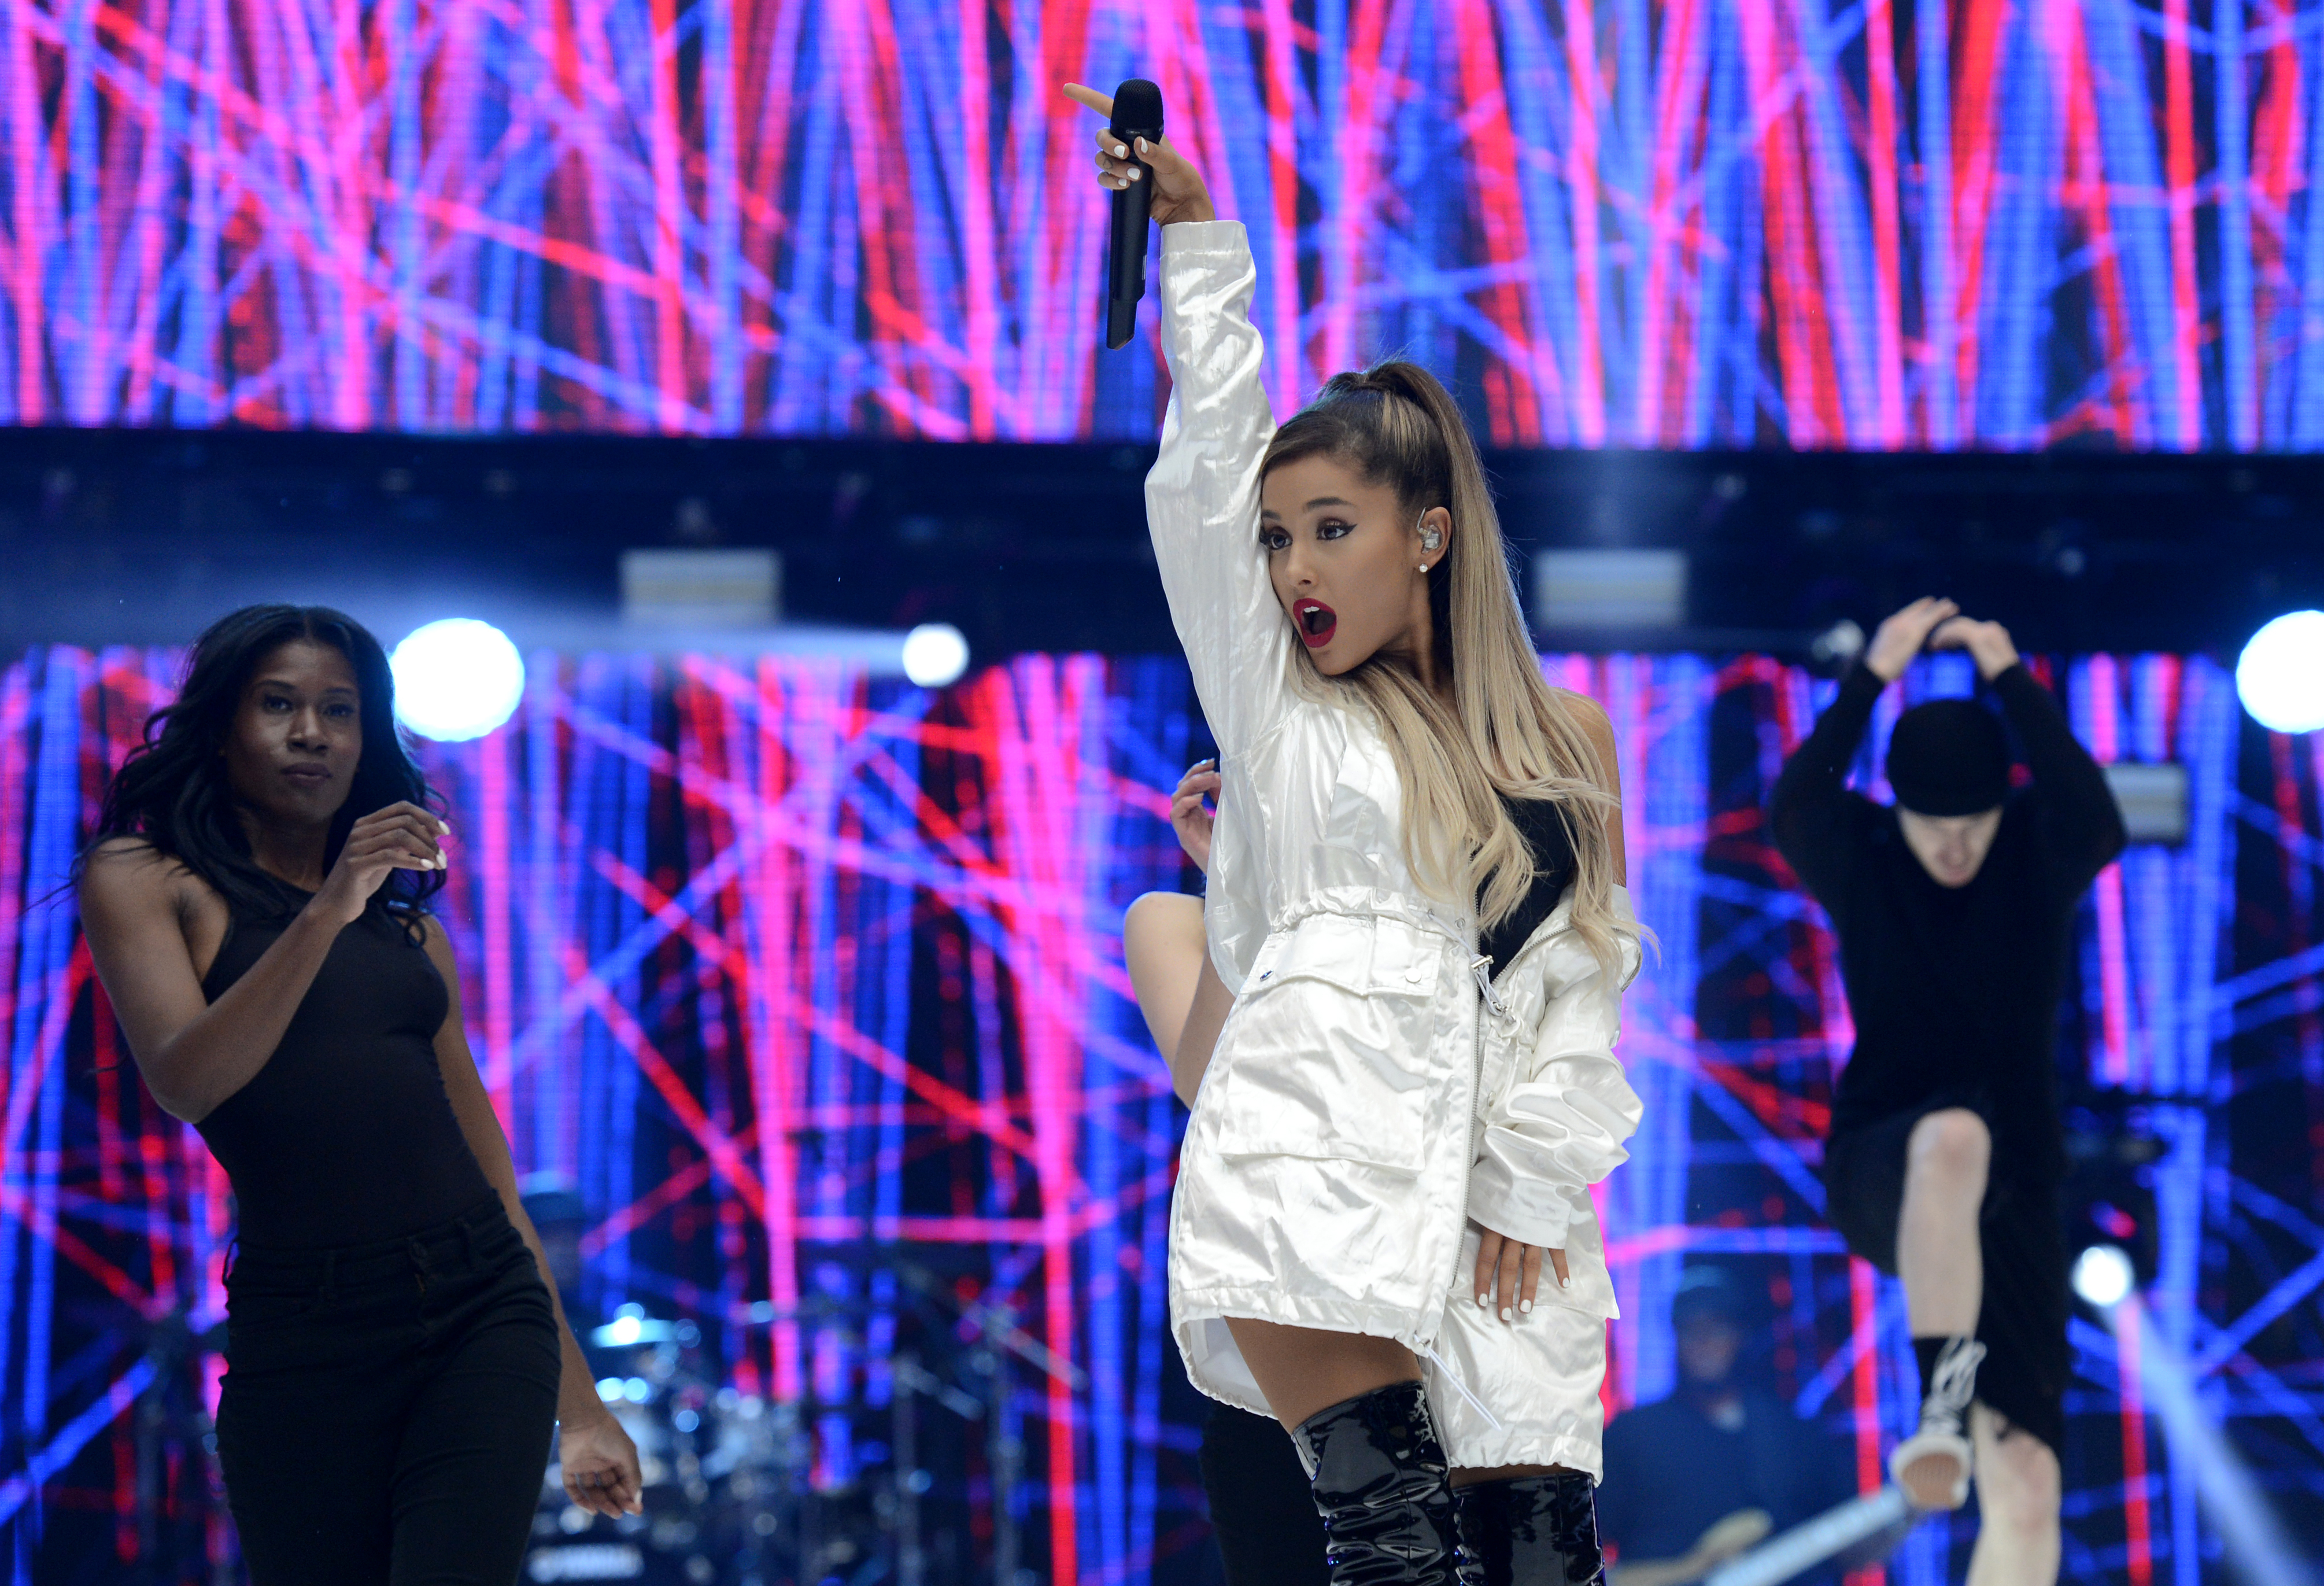 Ariana Grande Capital FM Summertime Ball 2016